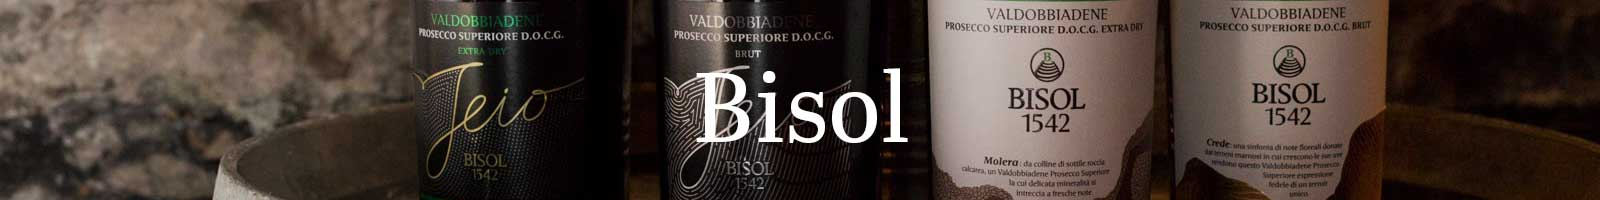 Bisol: Essential Winemakers of Italy